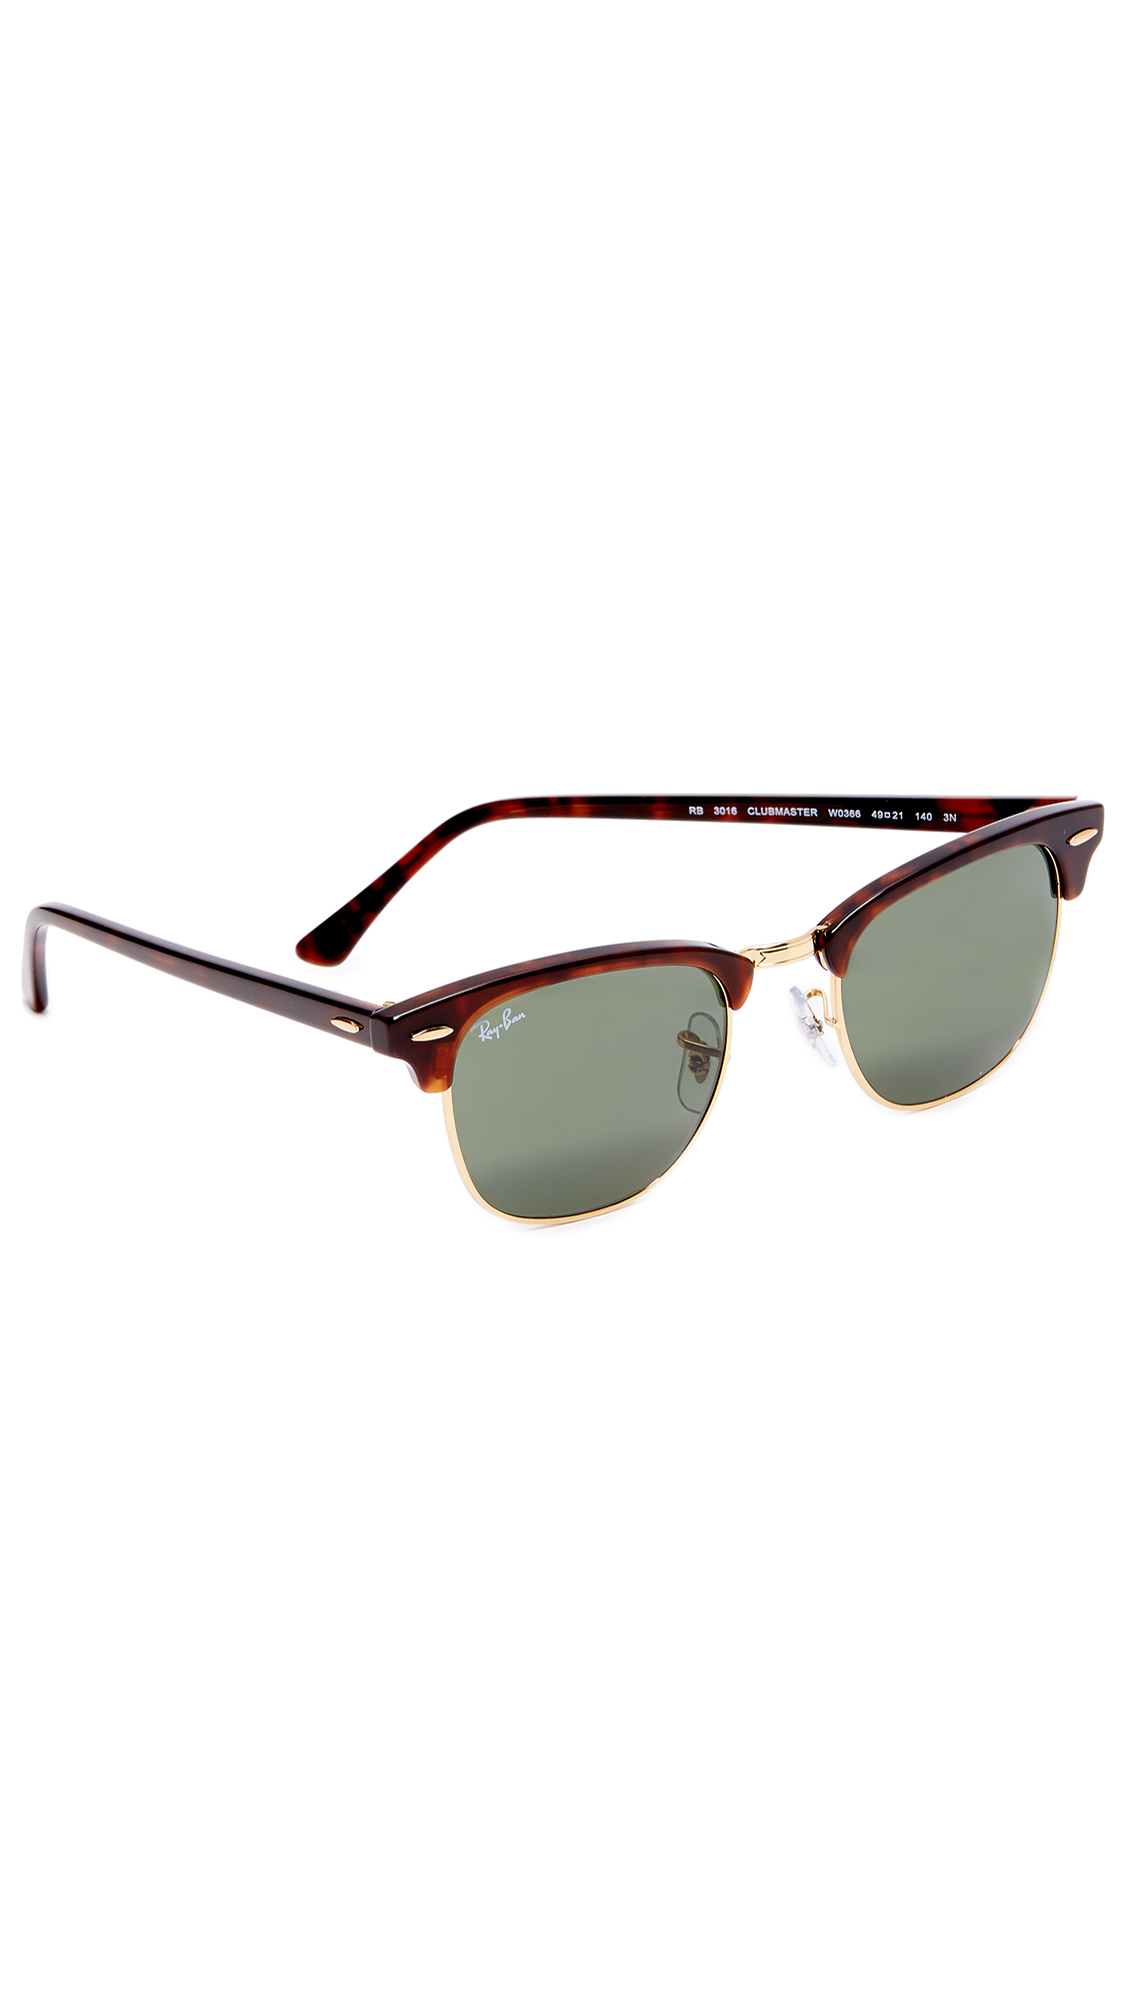 e0ff3a160c3160 ... coupon code for buy ray ban clubmaster rb3016 sunglasses online zalora  malaysia 255da d0780